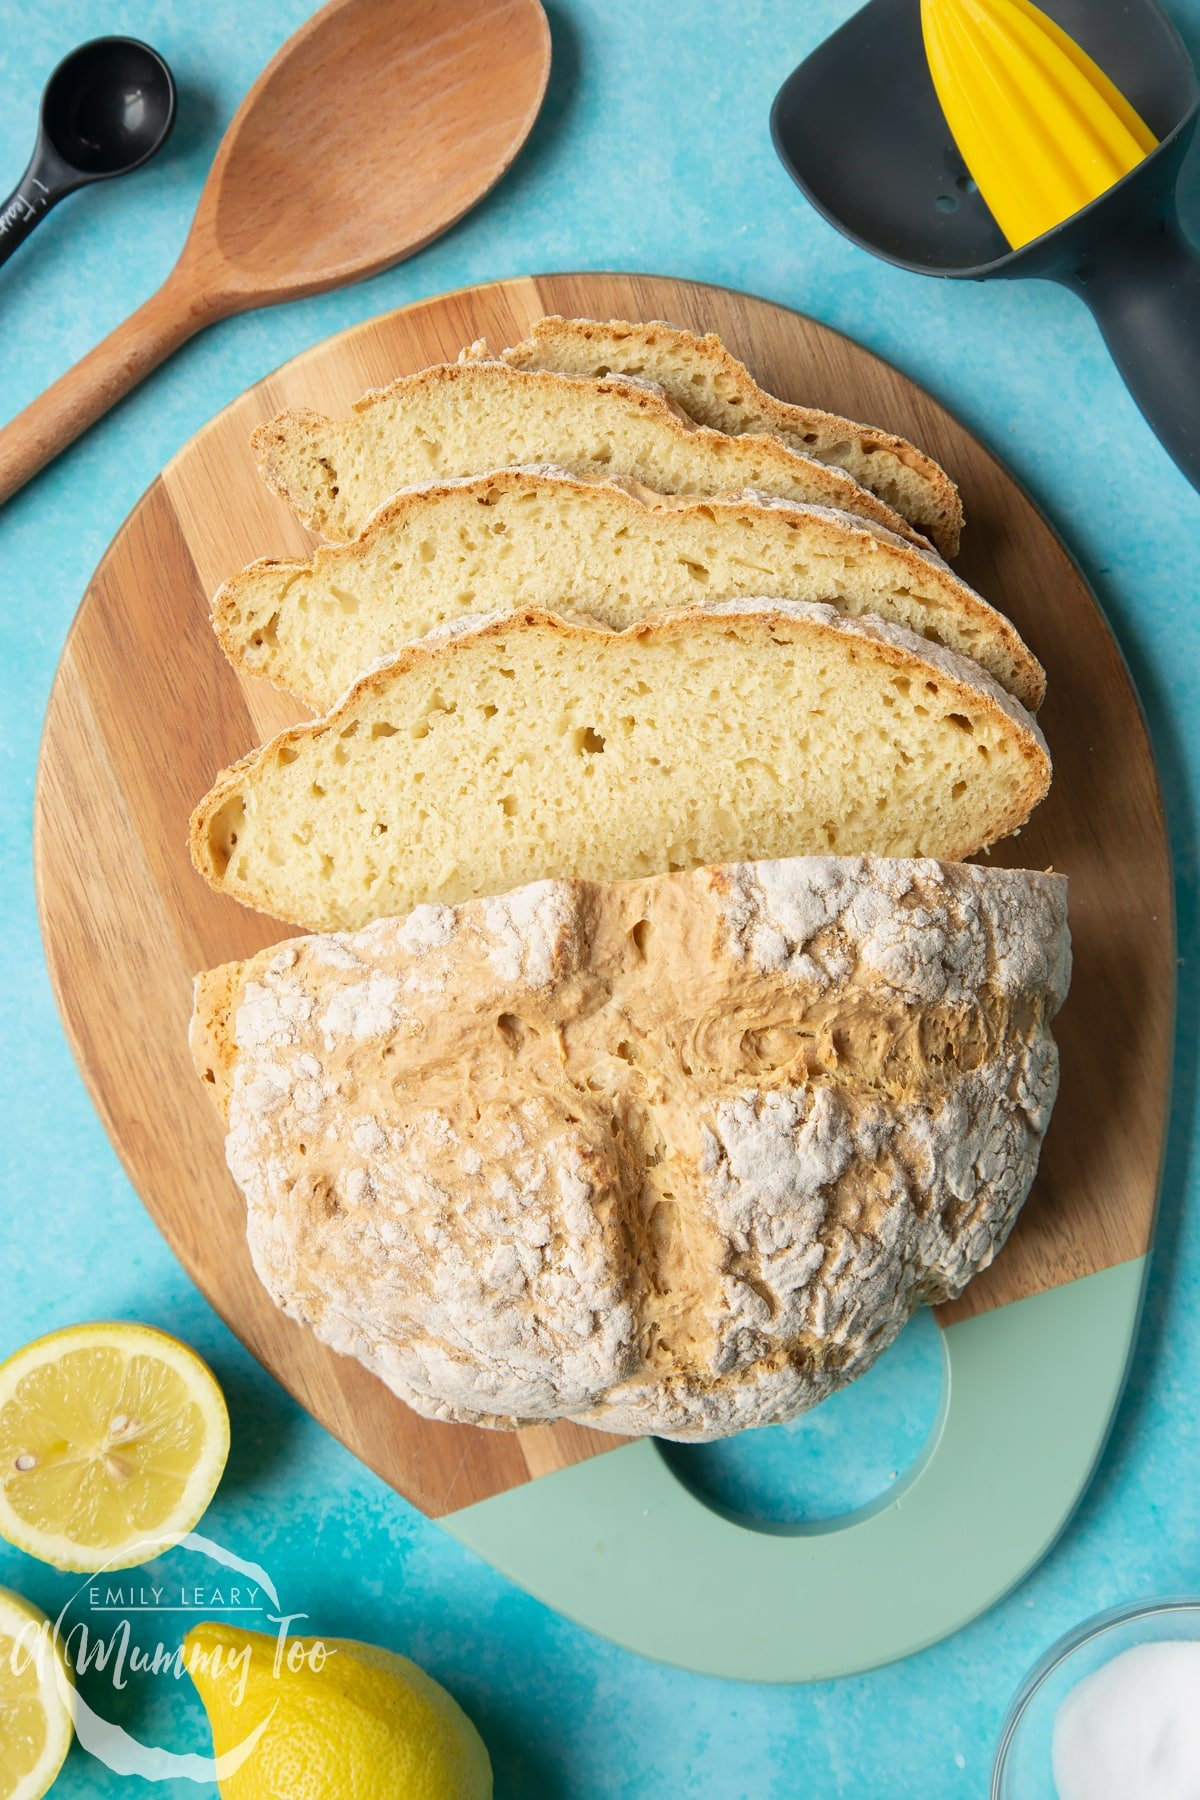 Vegan soda bread on a wooden board. Some of the bread has been cut into slices.